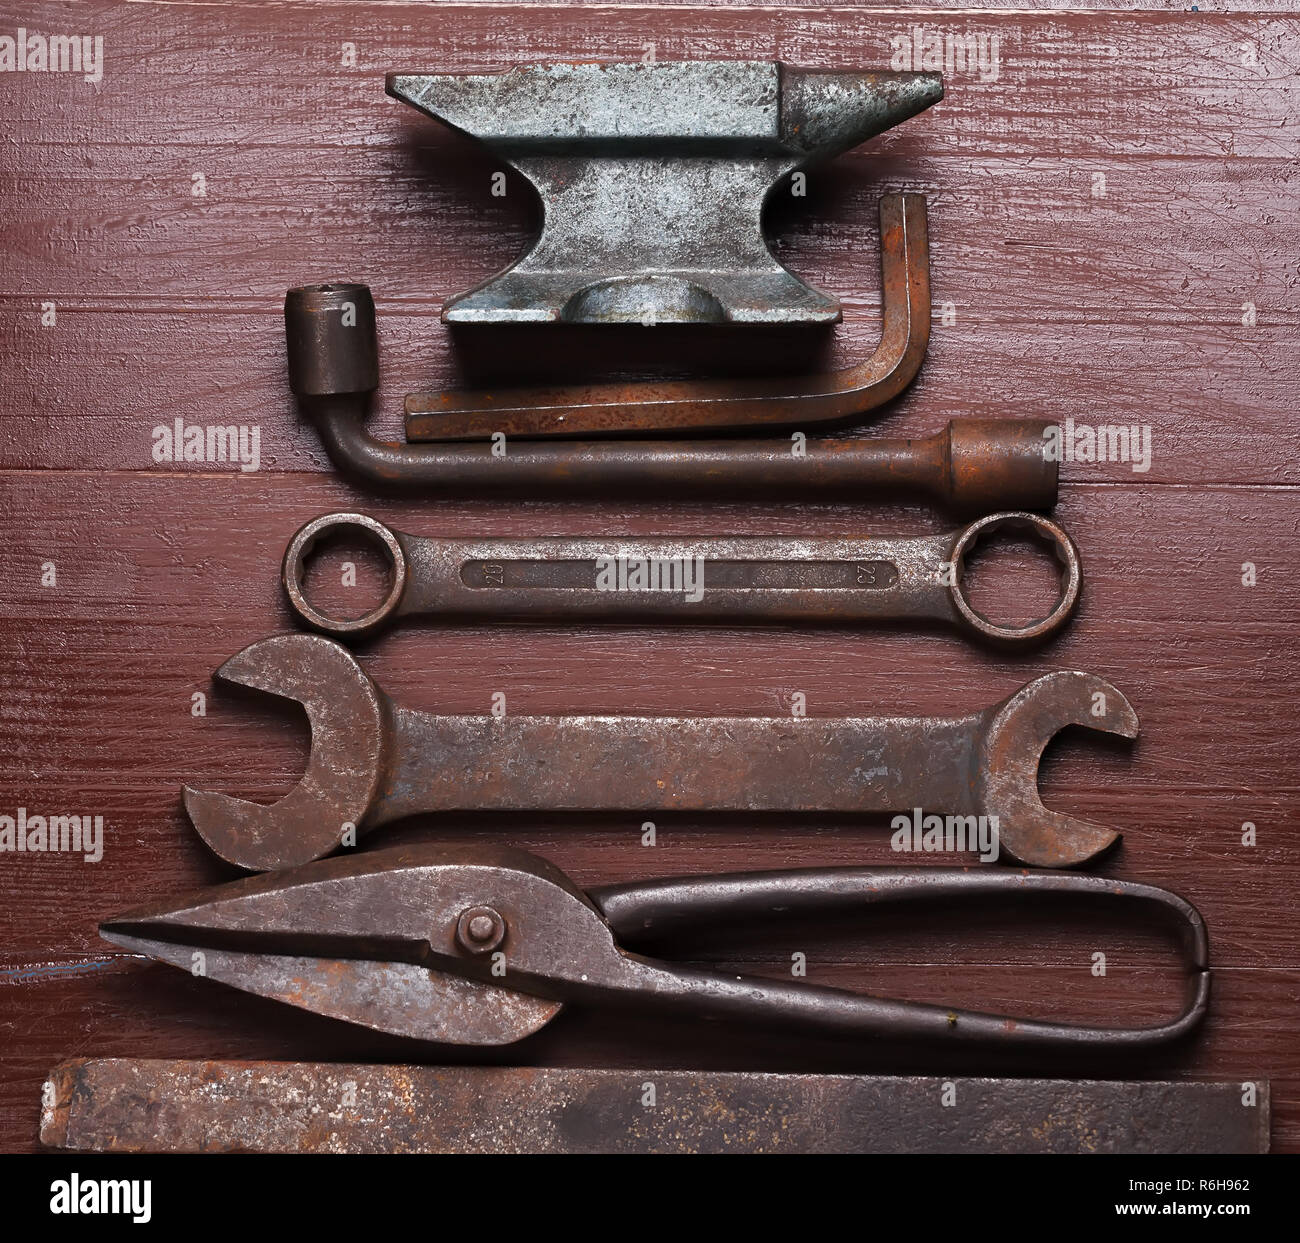 Old rusty rugged anvil and other blacksmith tools on brown natural